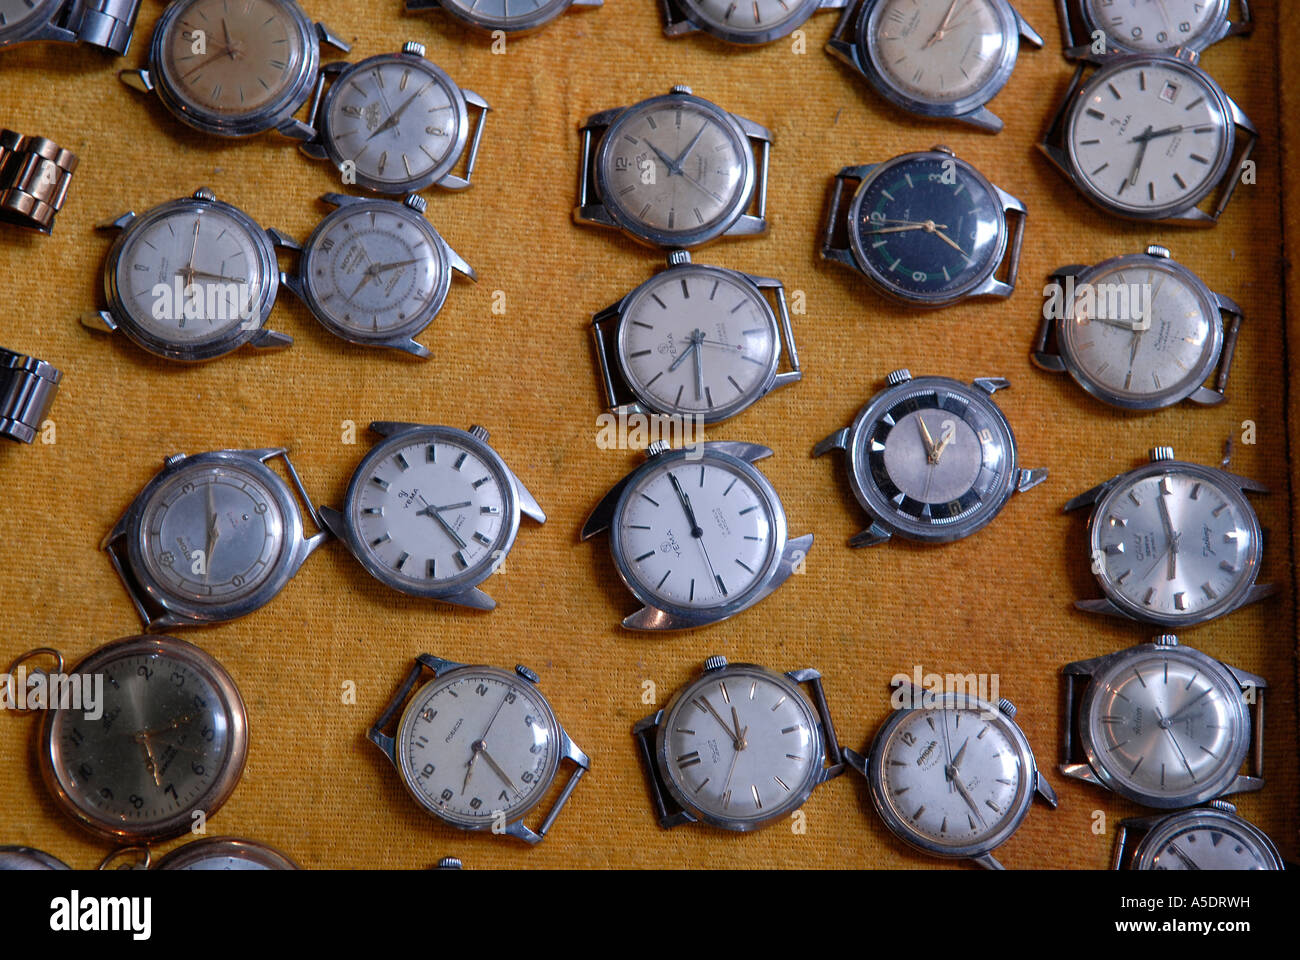 Collection of old wristwatches - Stock Image